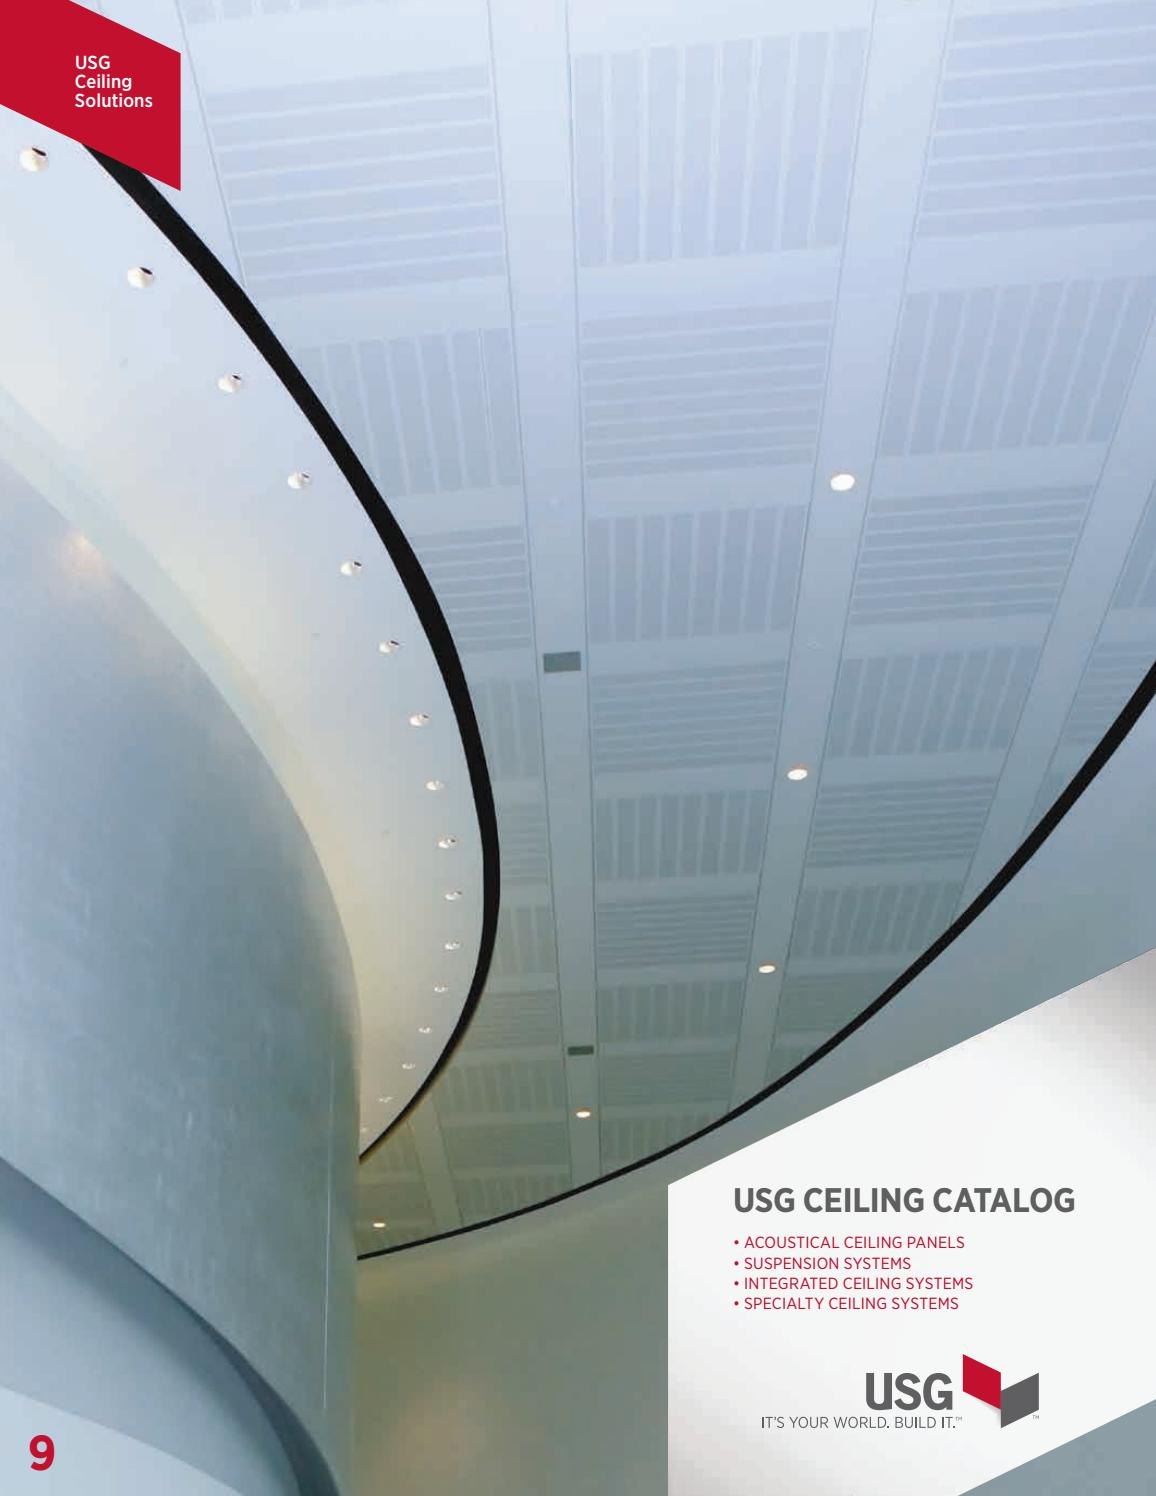 Usg ceilings systems catalog en sc2000 by arch essam issuu dailygadgetfo Images